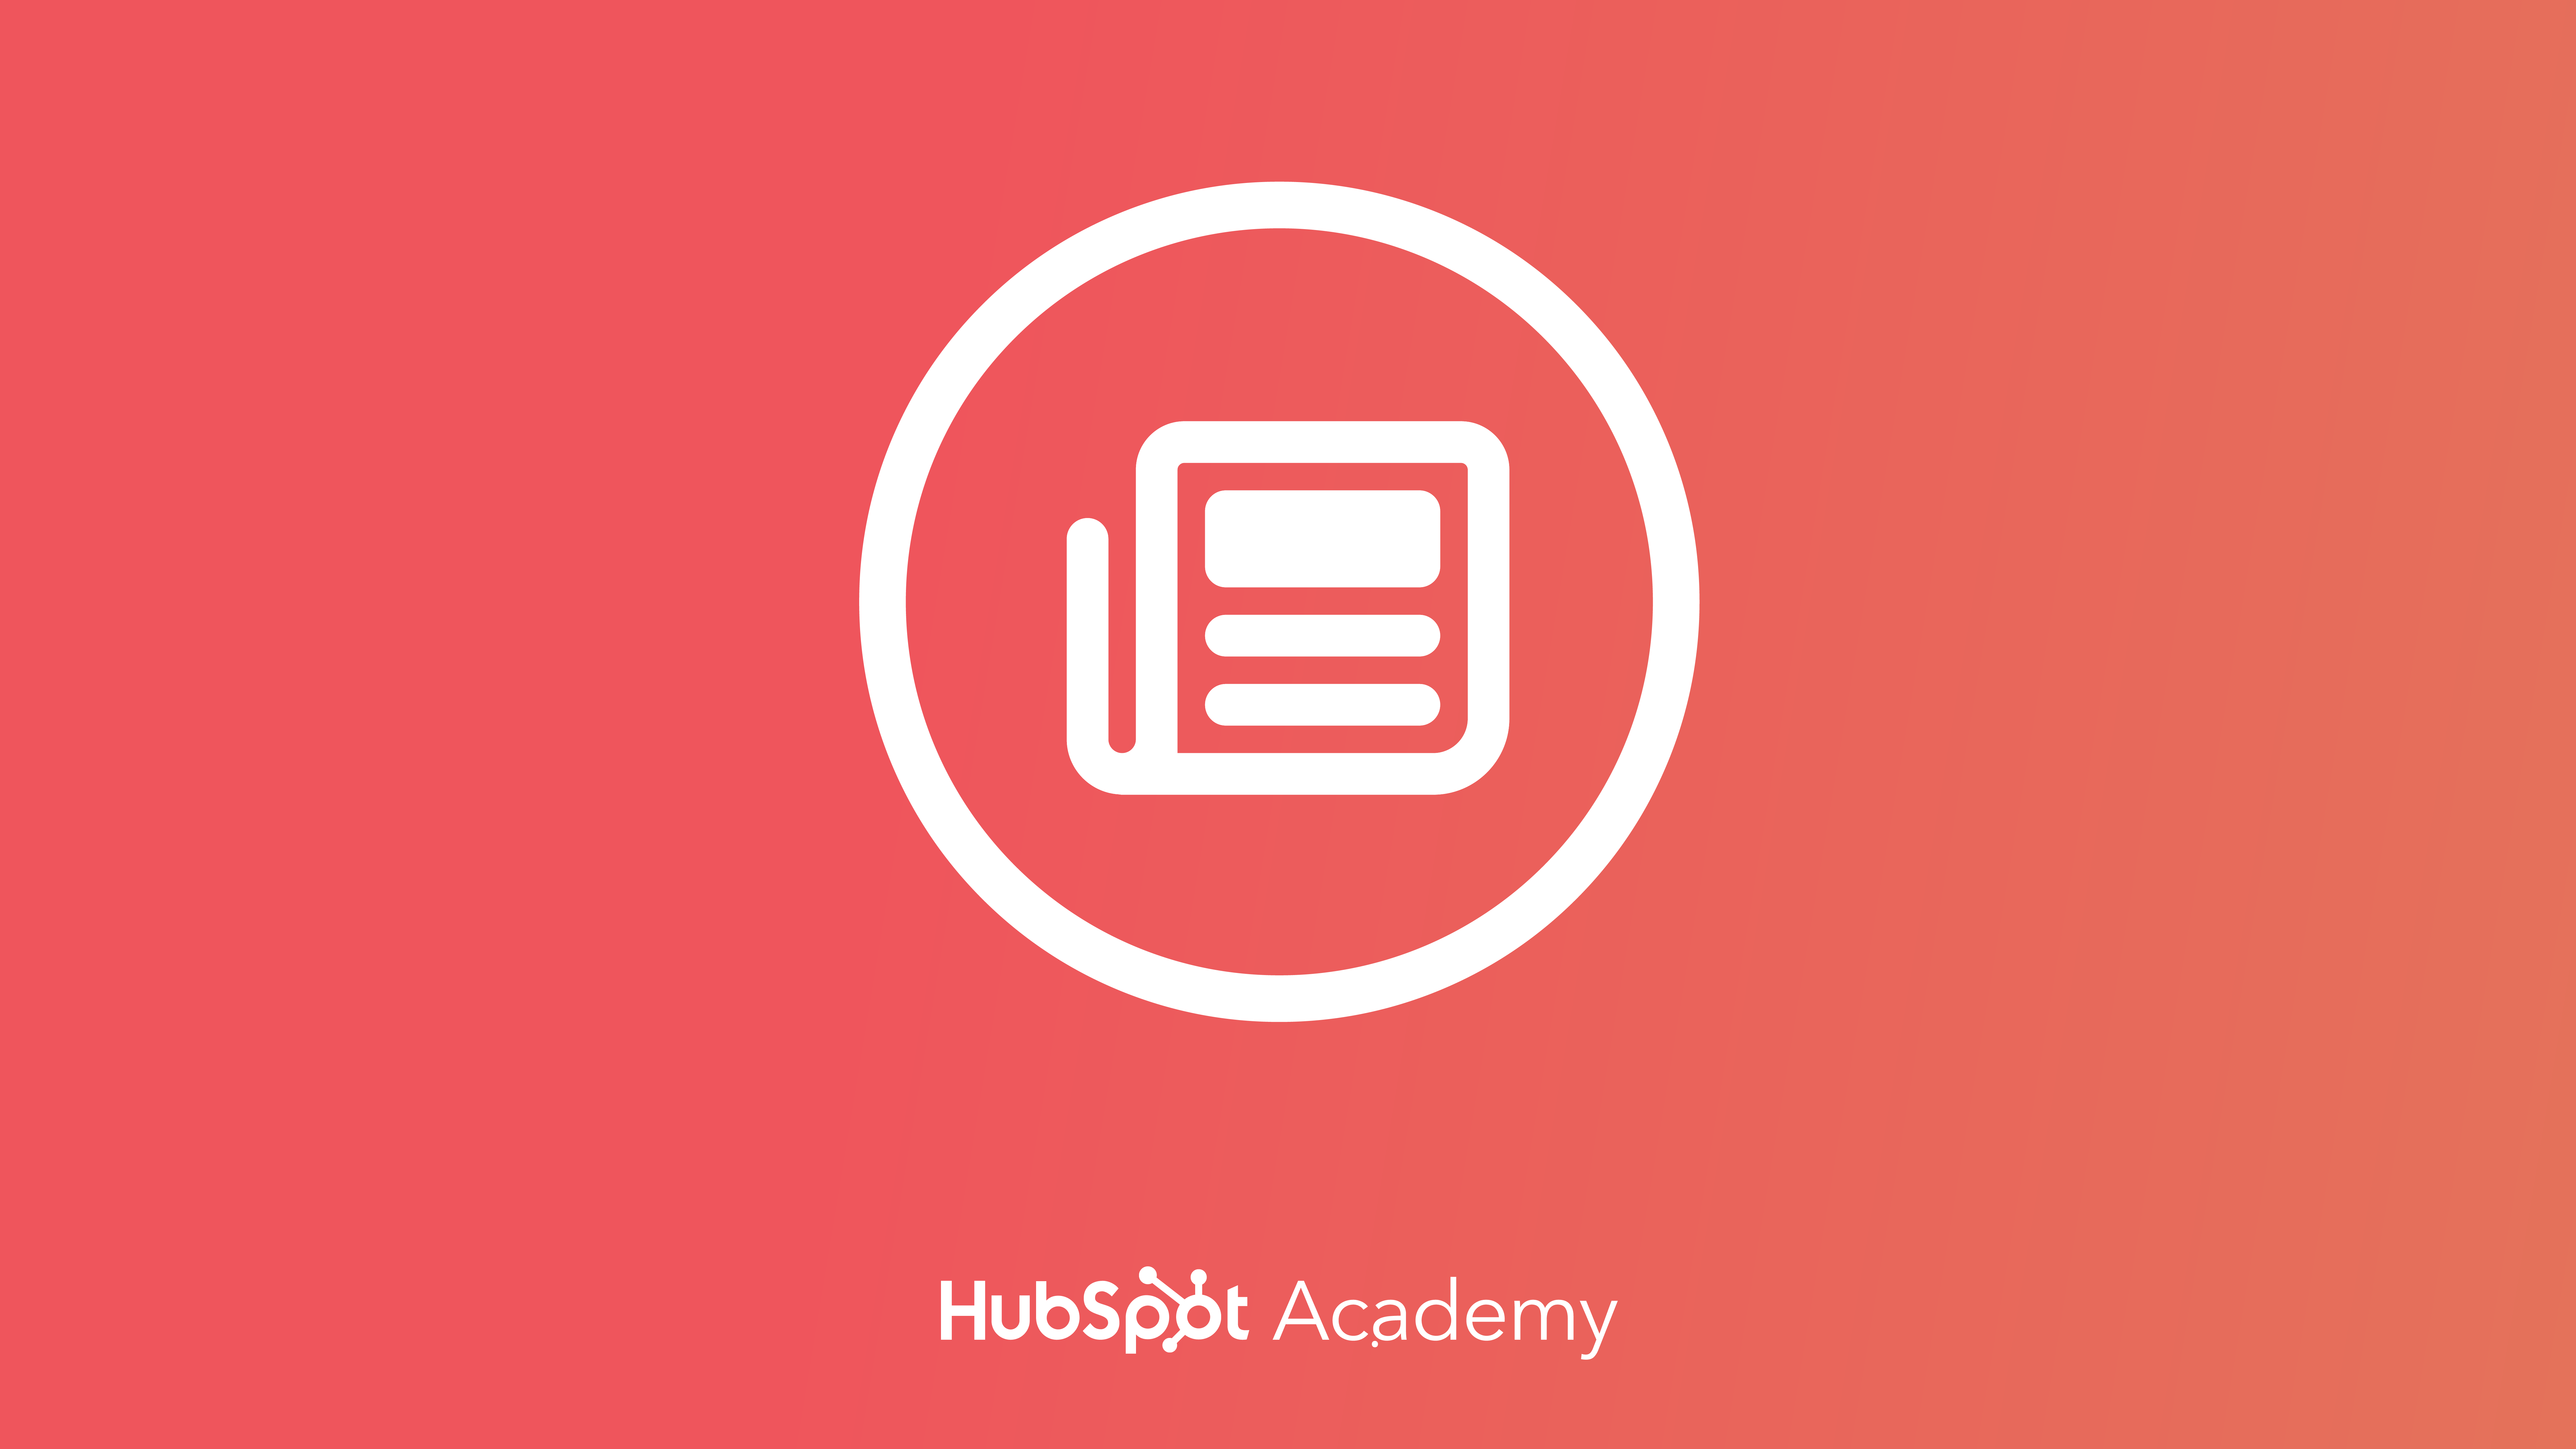 Content Marketing Certification course by HubSpot Academy